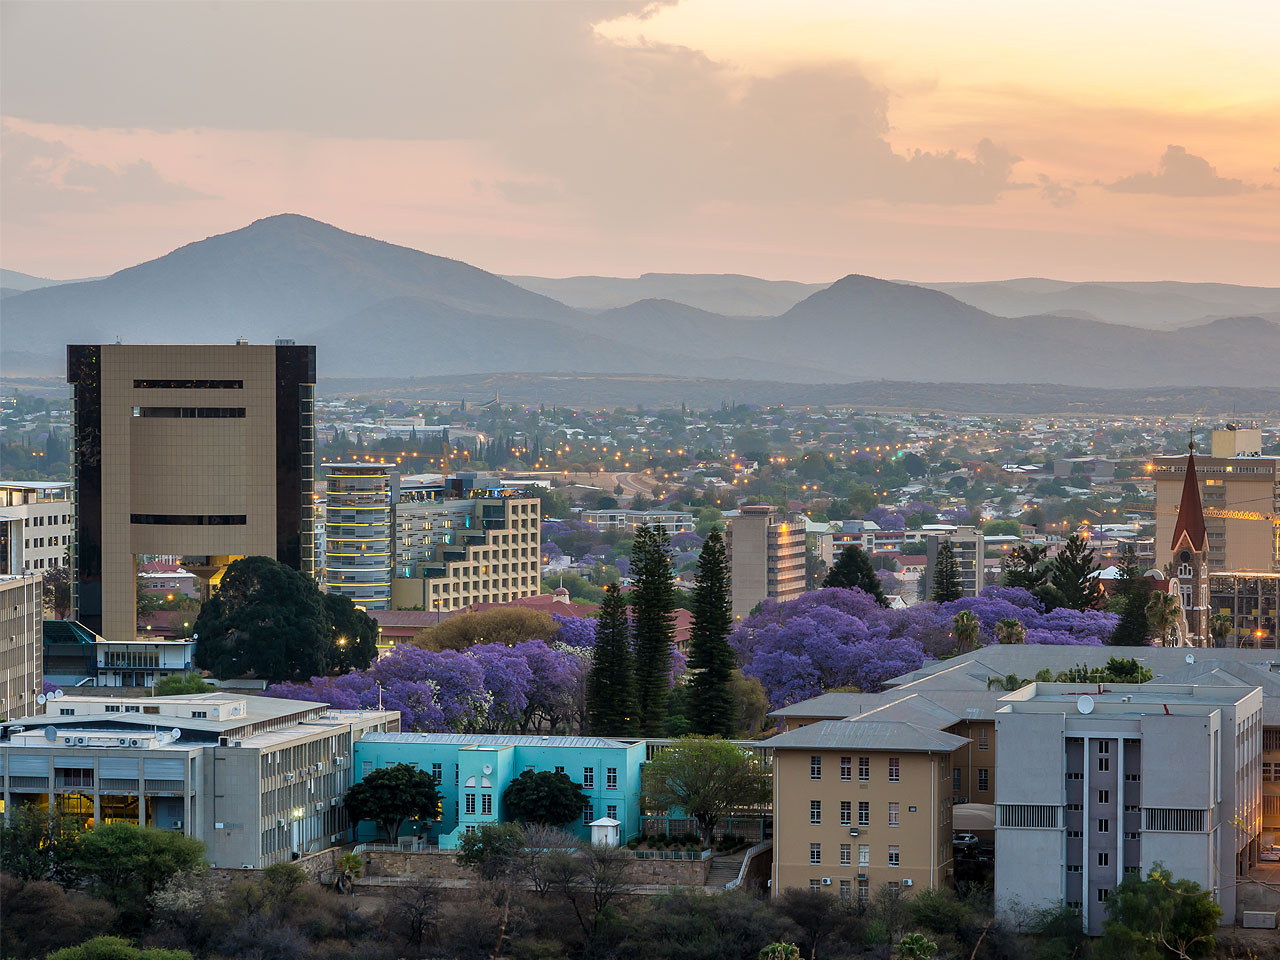 A view out over the buildings and city of Windhoek at sunset with the hills in the background.